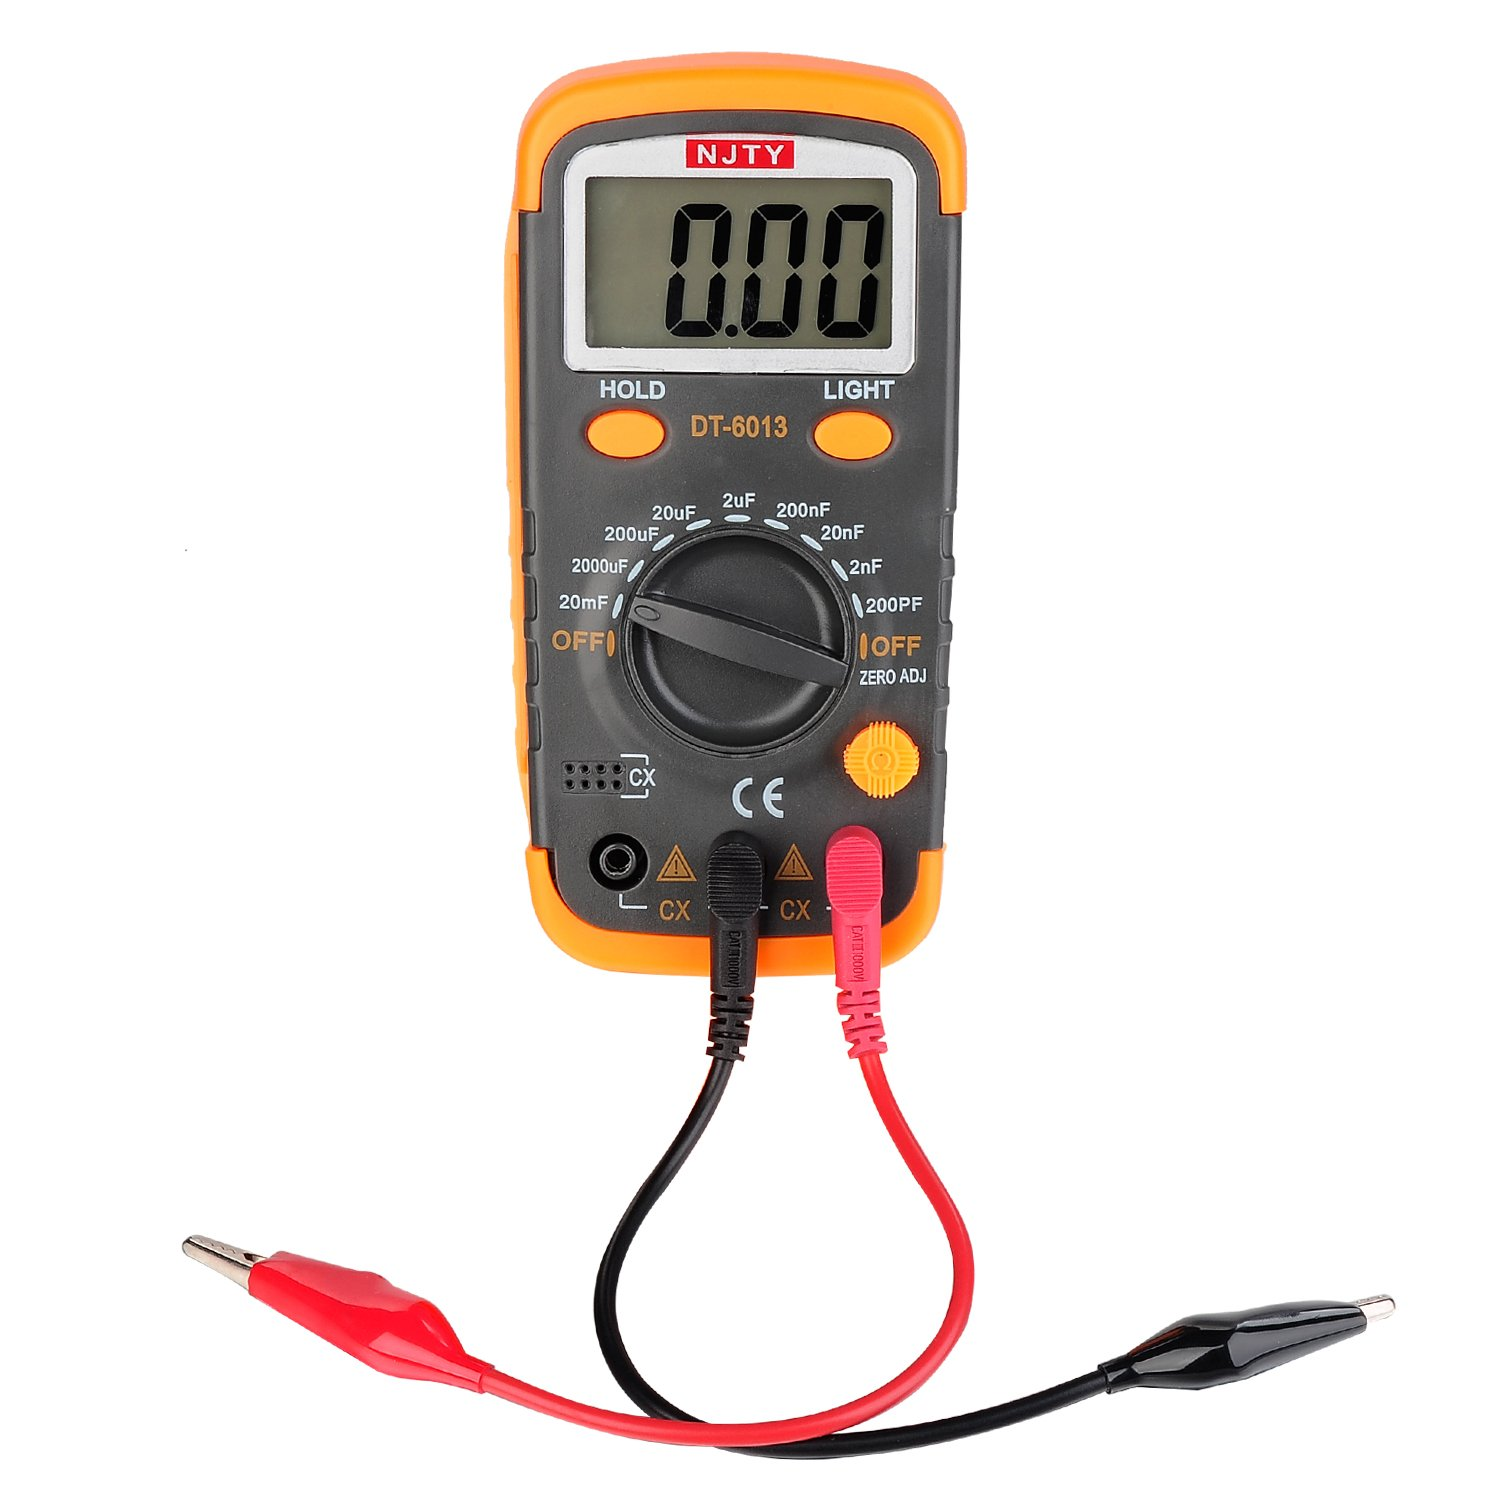 ELIKE DT6013 Capacitance Meter / Capacitor Tester 0.1pF to 20mF with Data Hold and Back Light Function/English Manual by ELIKE (Image #3)